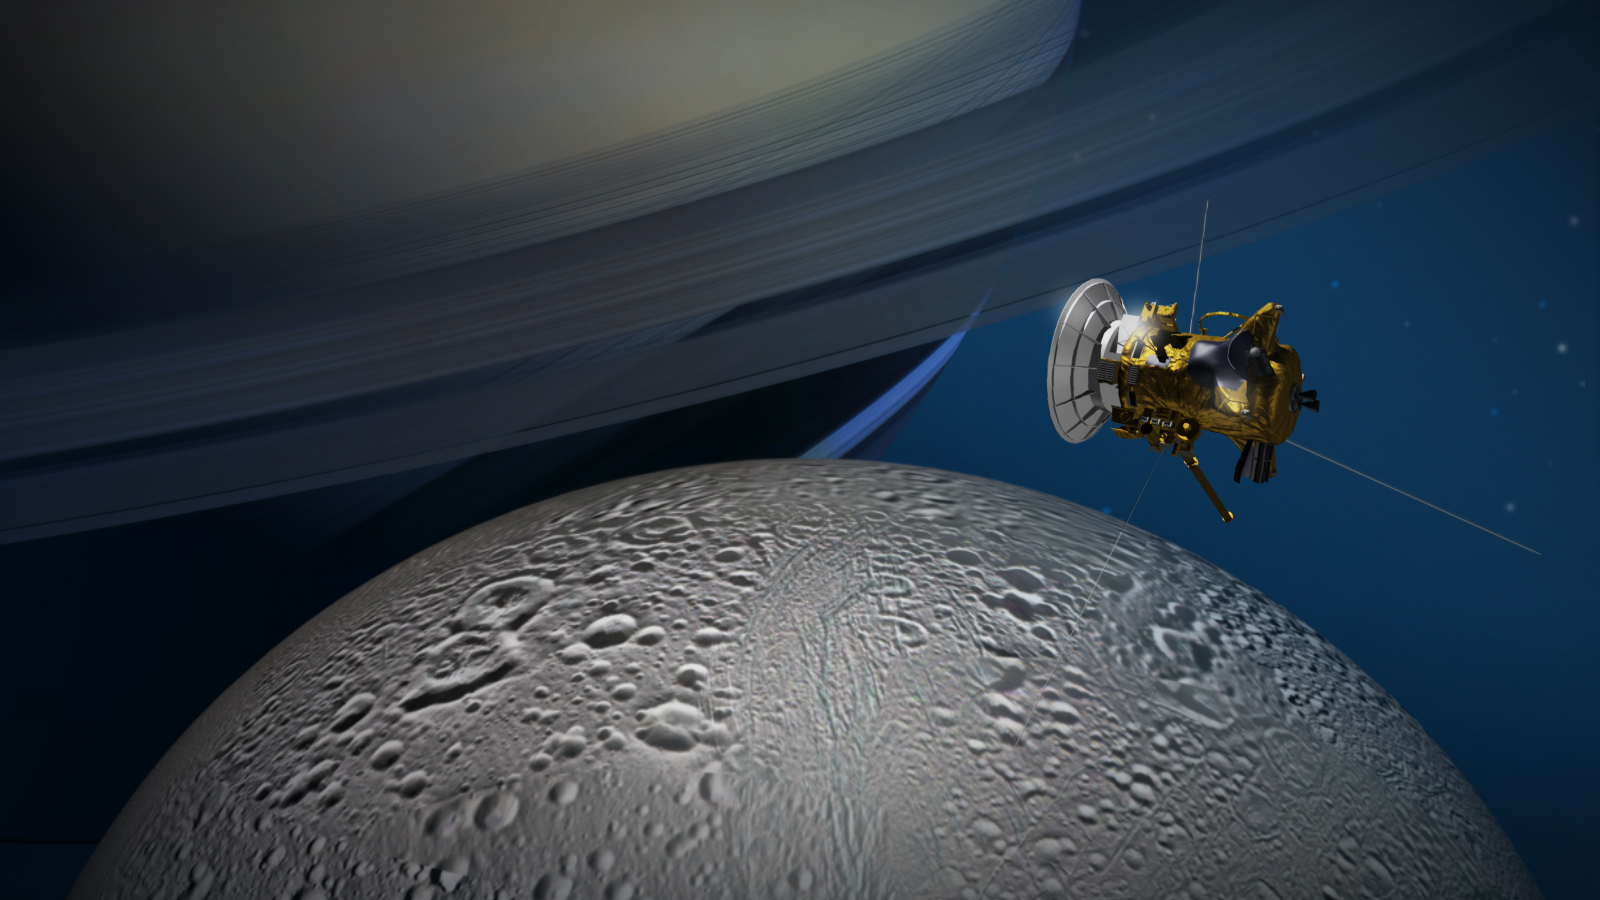 How life on Earth might survive on Saturn's ice moon Enceladus